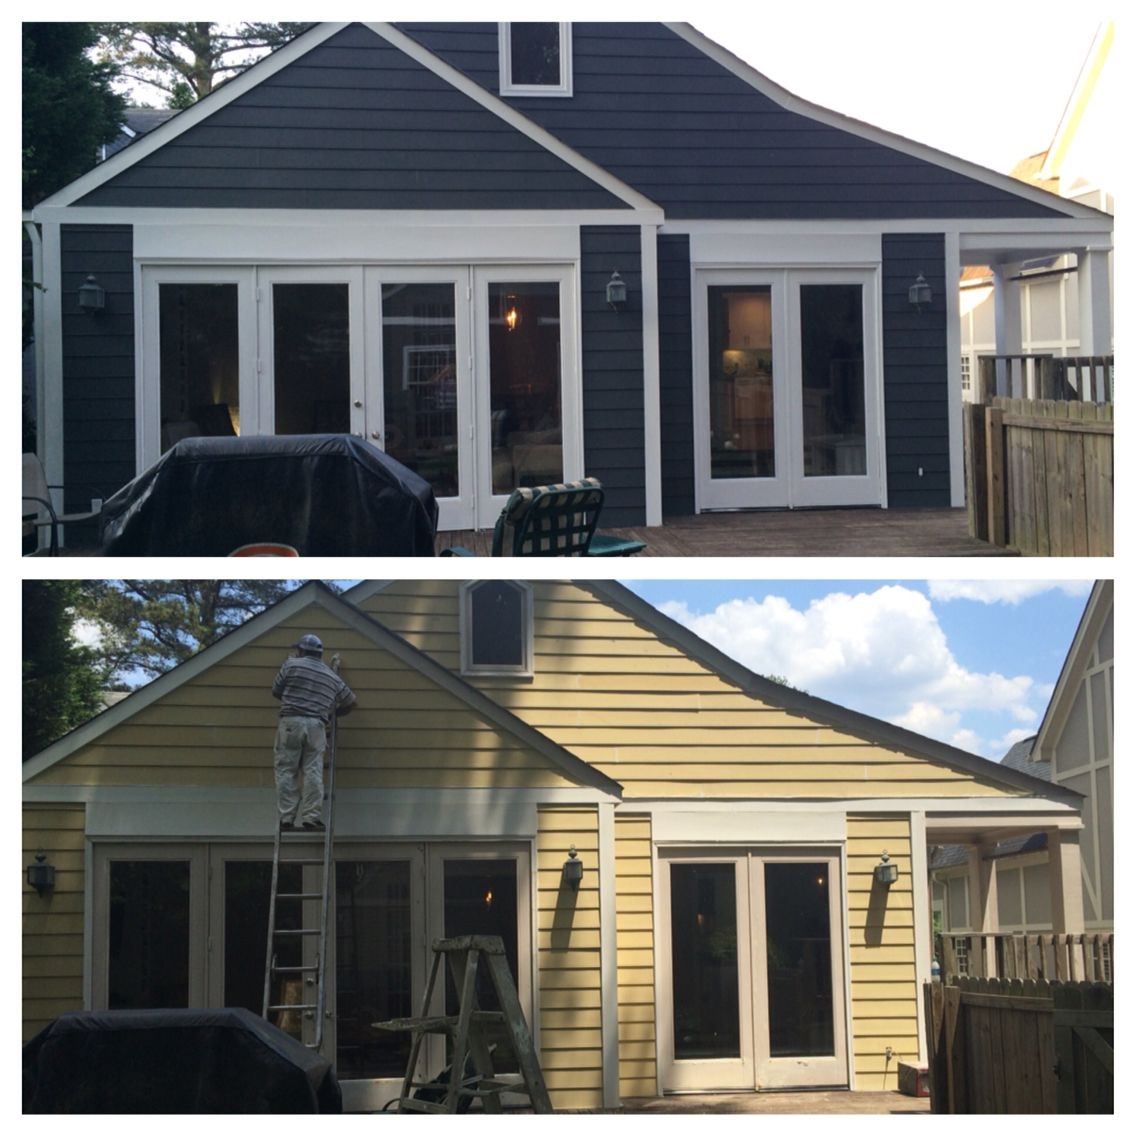 Home Exterior Design Tool: From Bland To Crisp! Benjamin Moore Flint Makes All The